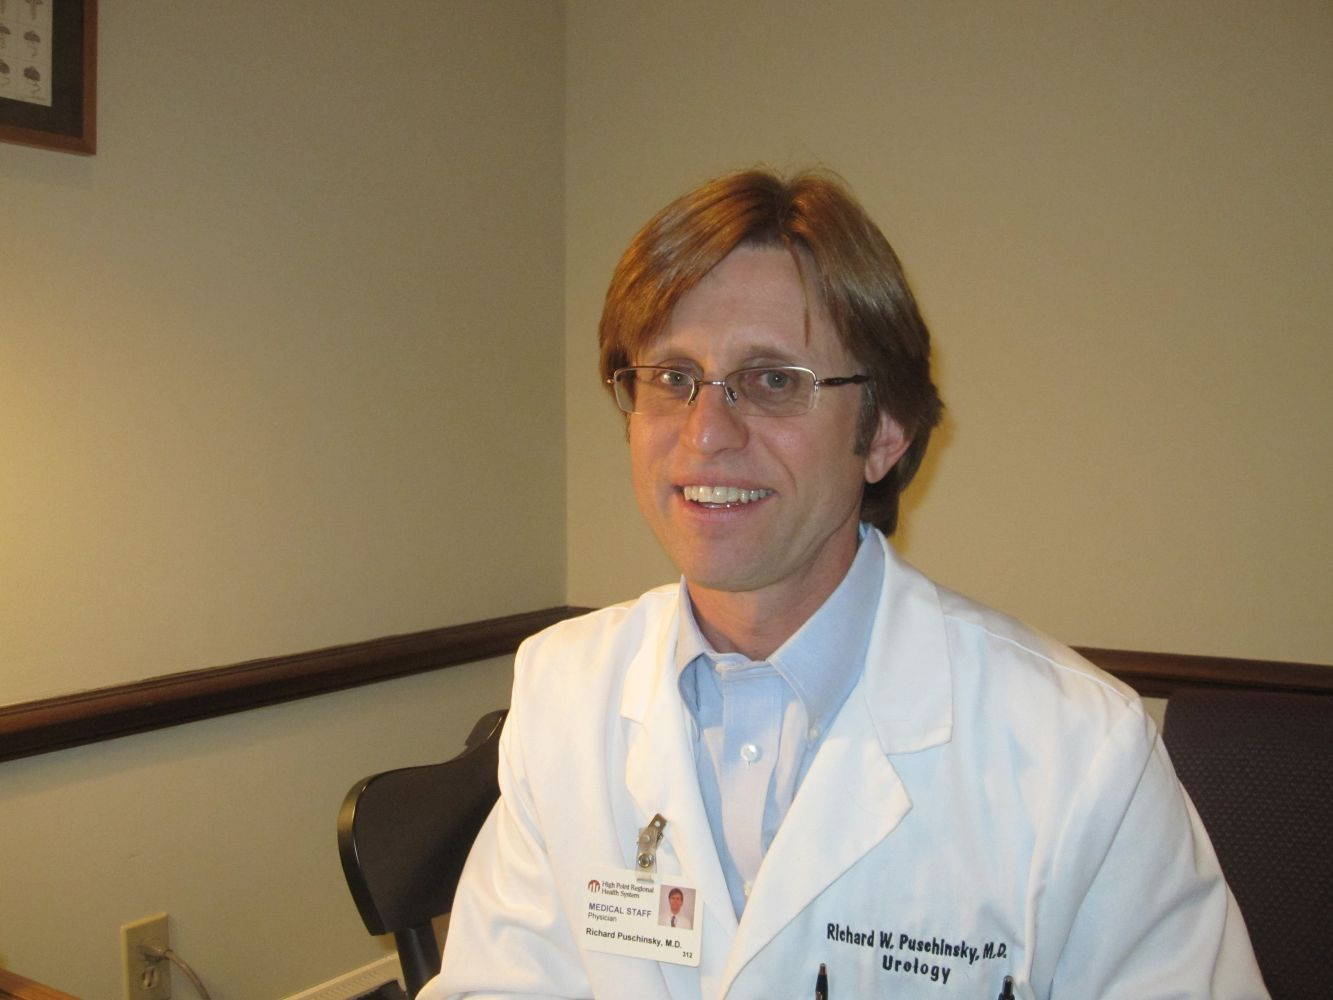 leader of our urological practice team in High Point, NC